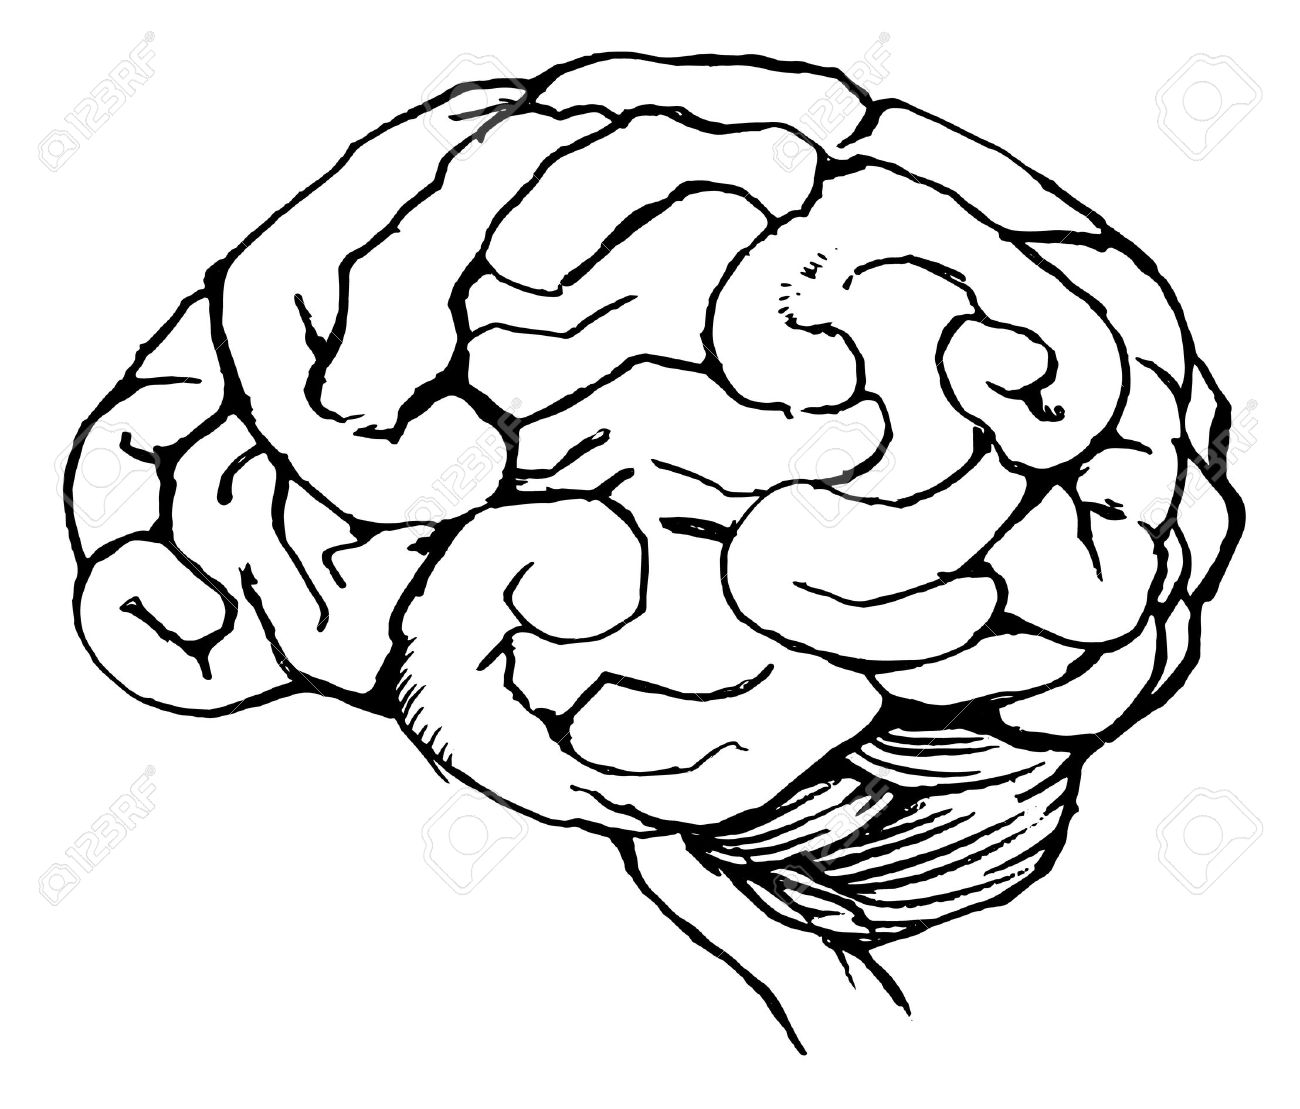 1300x1109 Sketch Of The Human Brain Royalty Free Cliparts, Vectors,